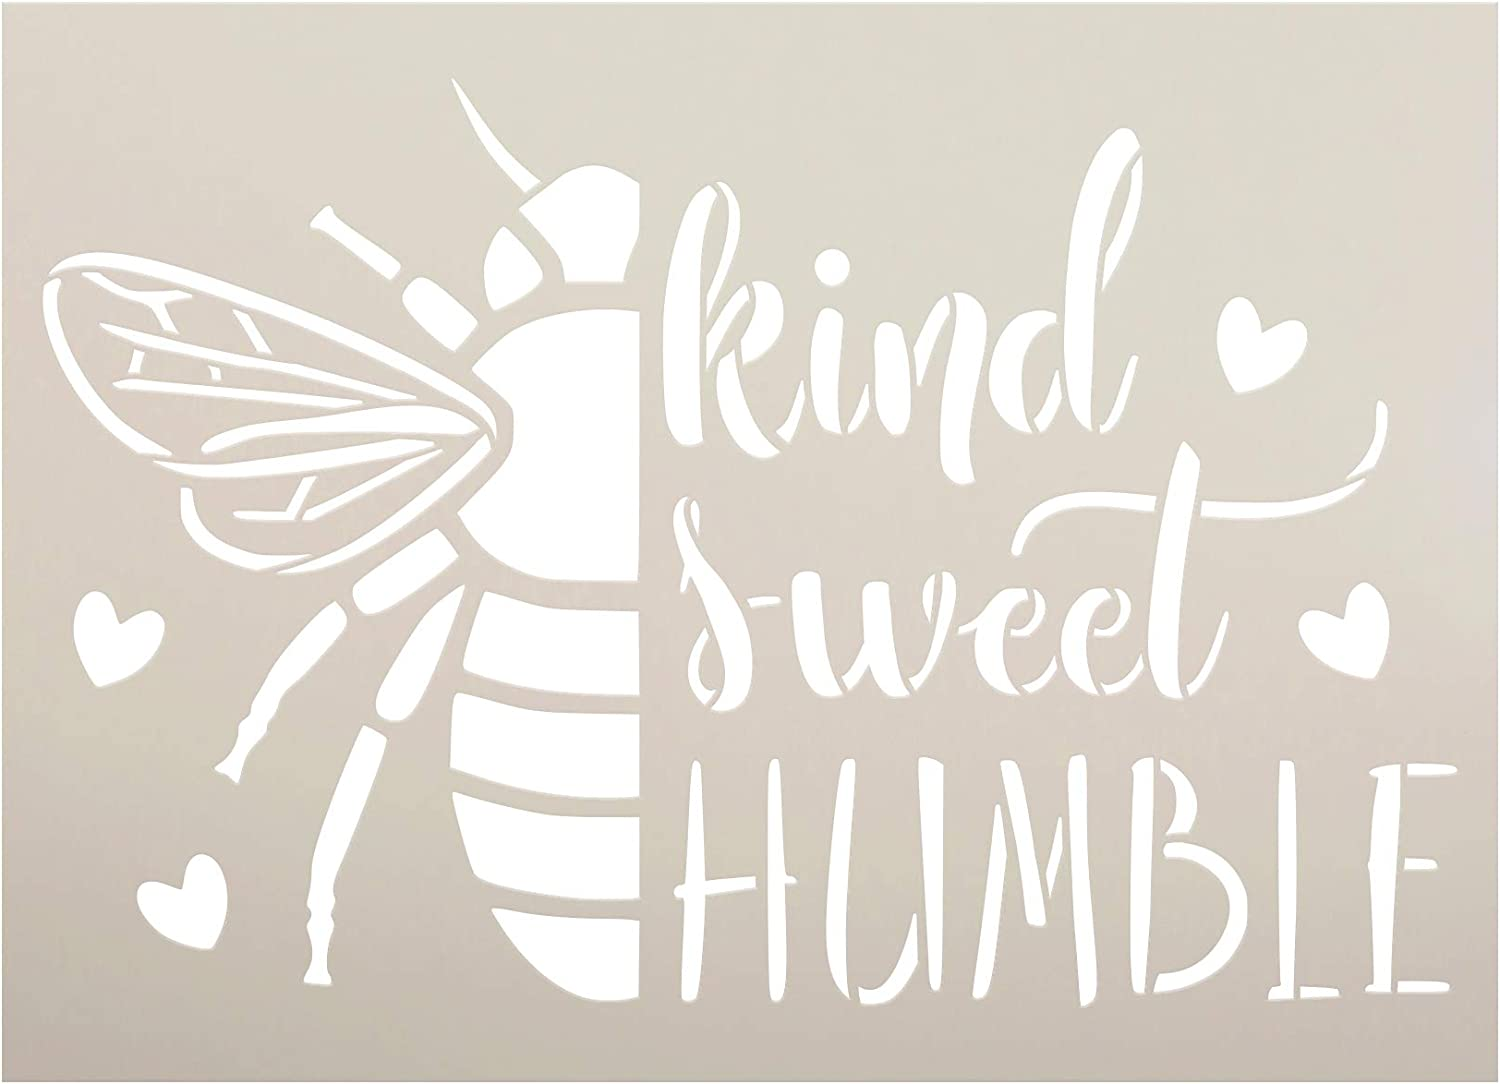 BEE Kind - Sweet - Humble Stencil by StudioR12 | DIY Bumblebee Home Decor | Craft & Paint Wood Sign | Reusable Mylar Template | Cursive Script Heart Gift Select Size (9 inches x 6.5 inches)